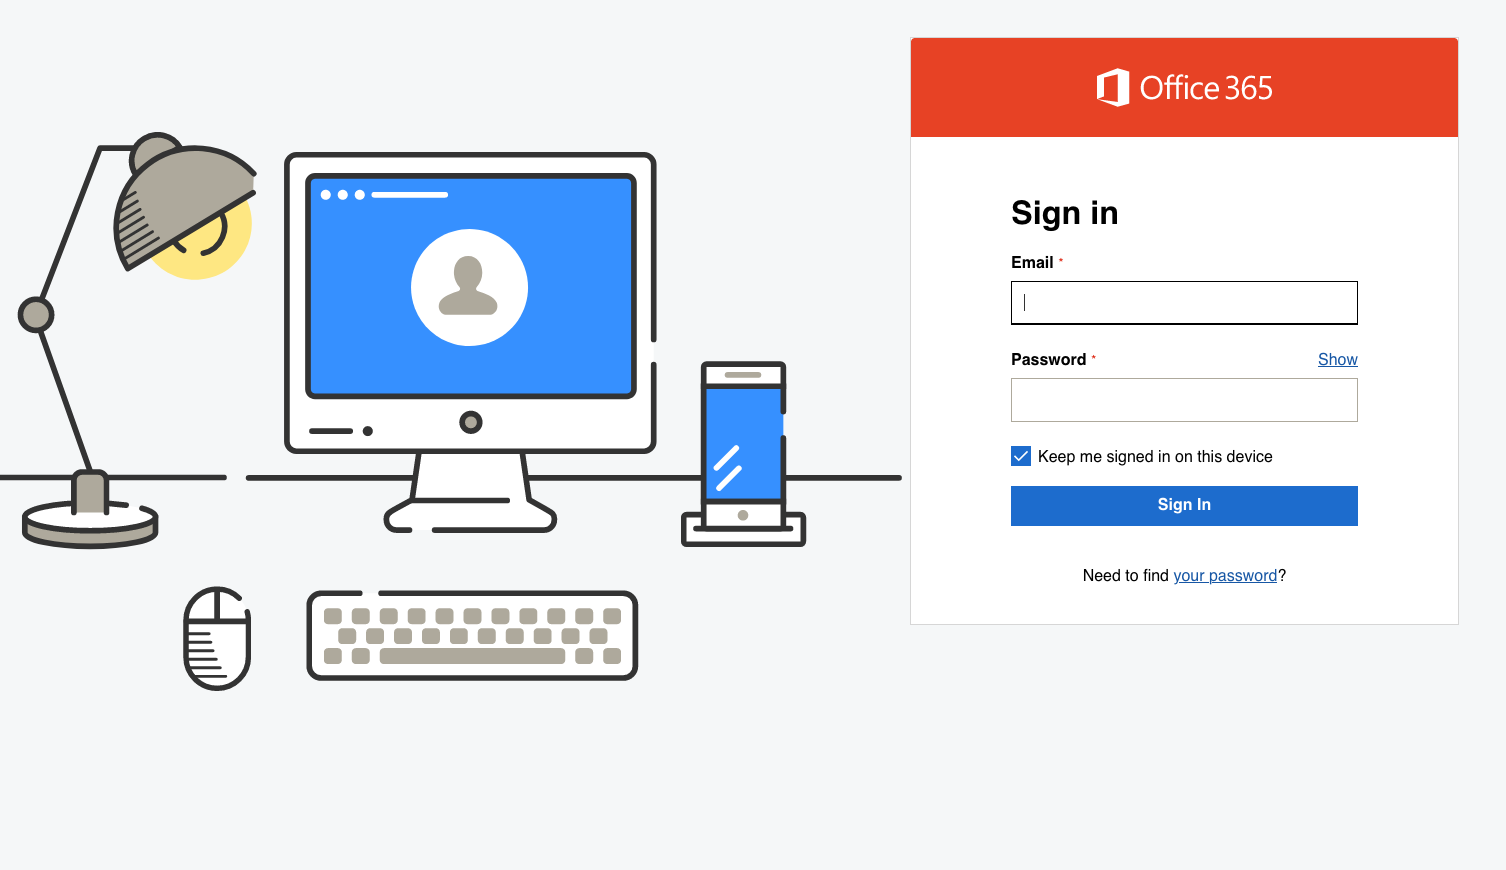 office 365 sign in page